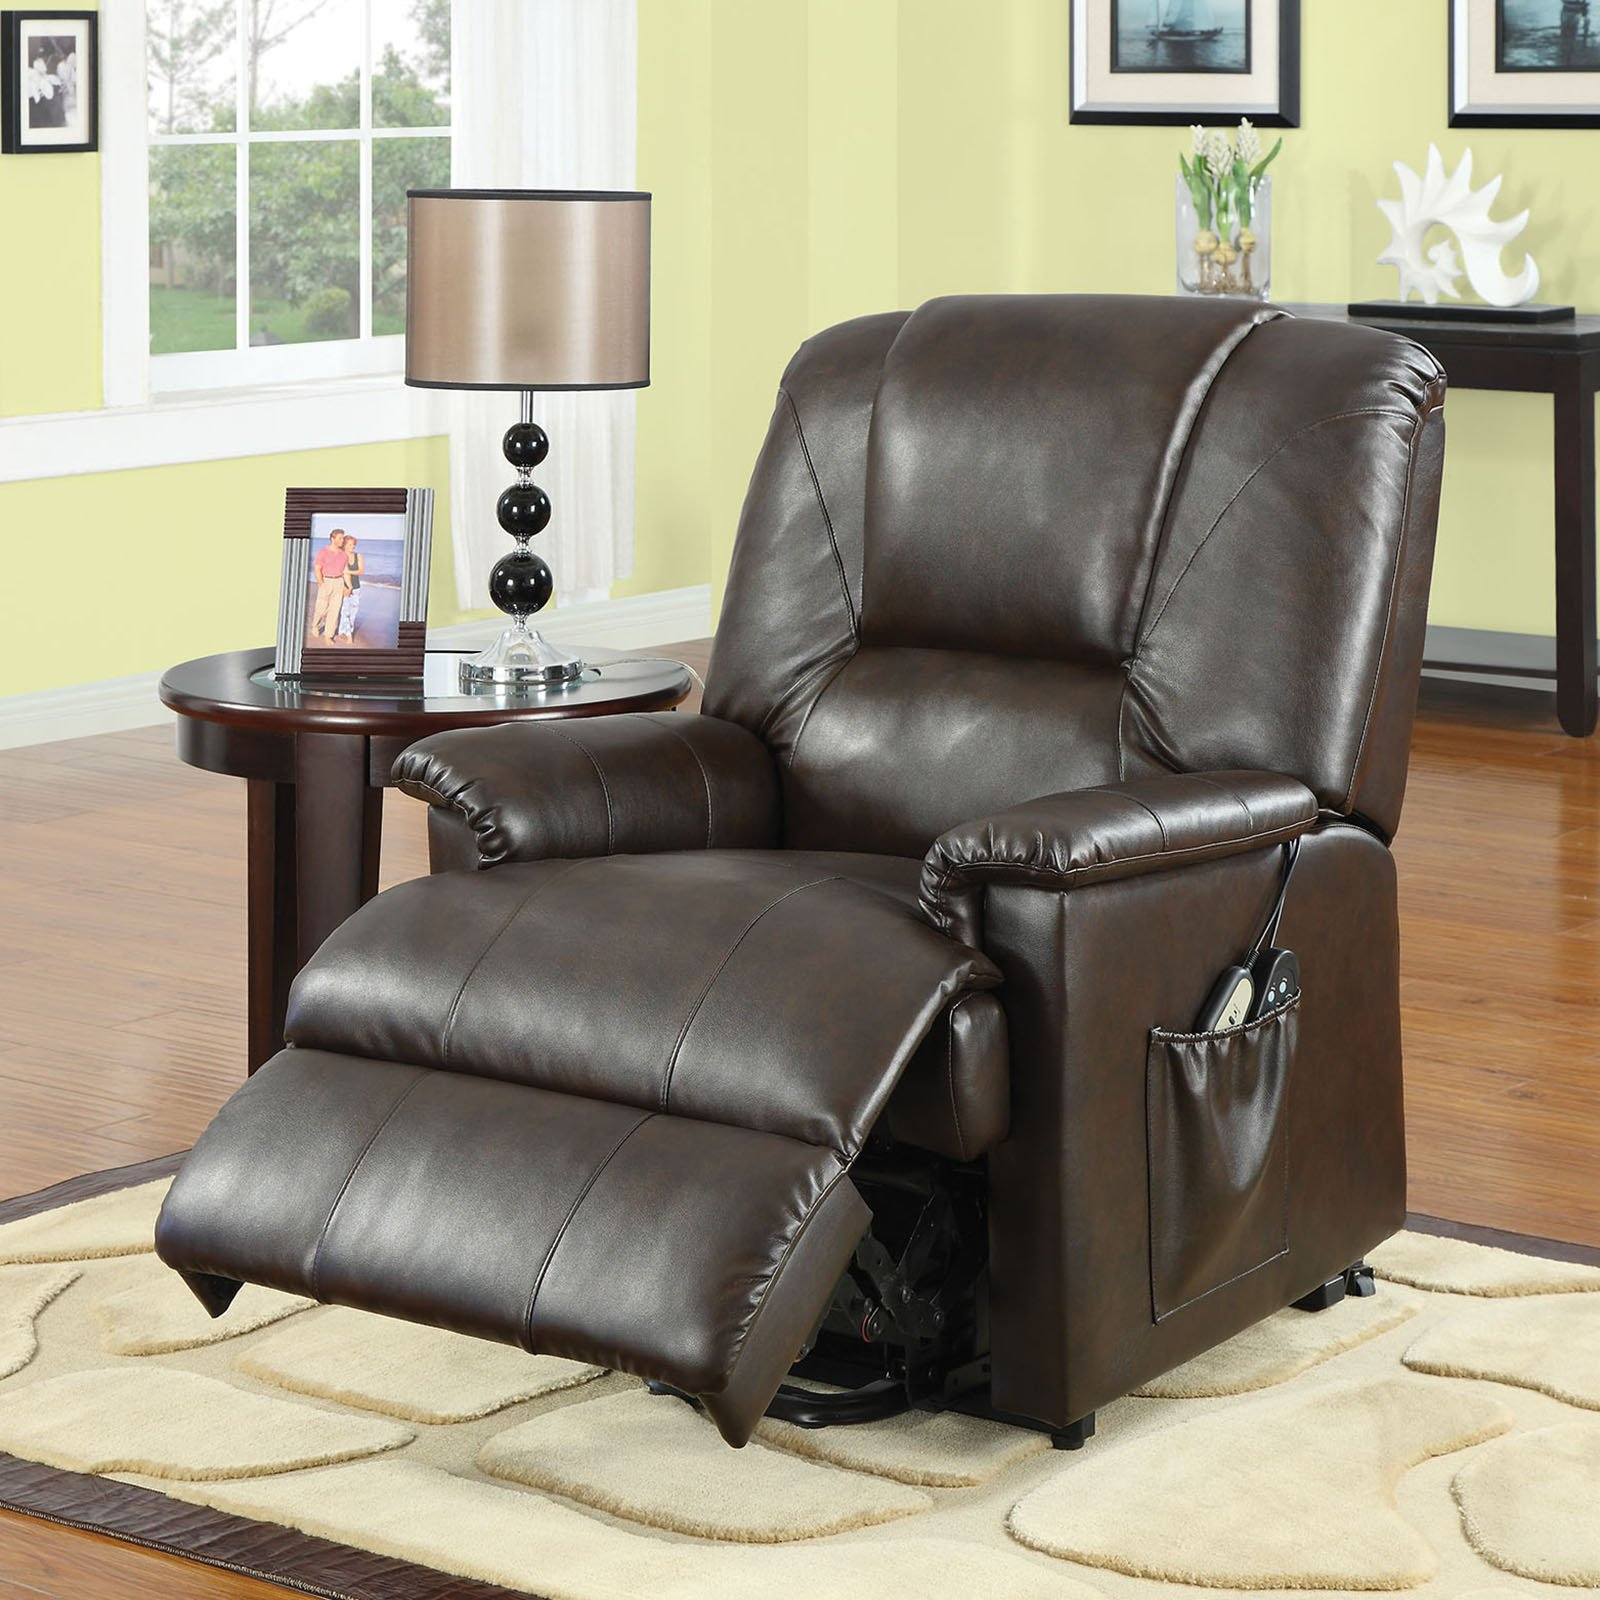 Acme Reseda Faux Leather Recliner with Power Lift and Massage by Acme Furniture